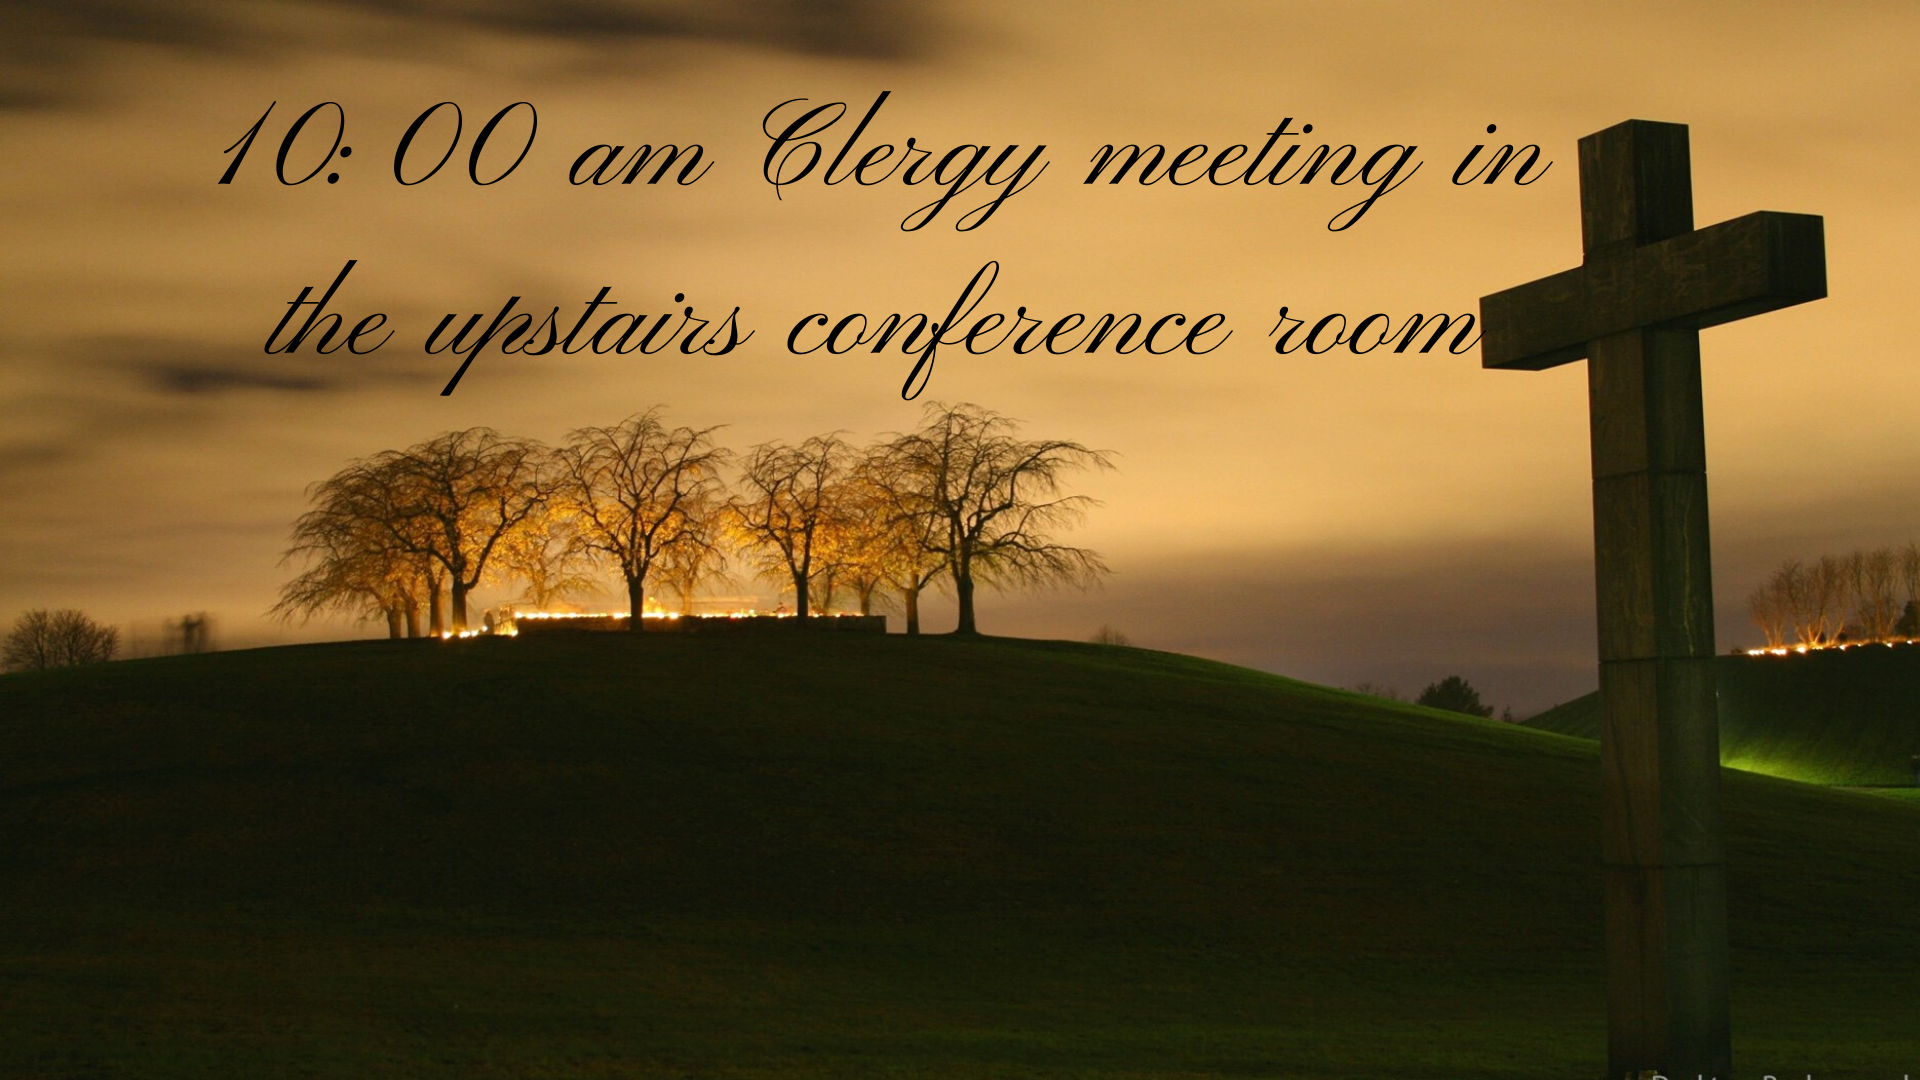 10:00 am Clergy Meeting in the Upstairs Conference Room